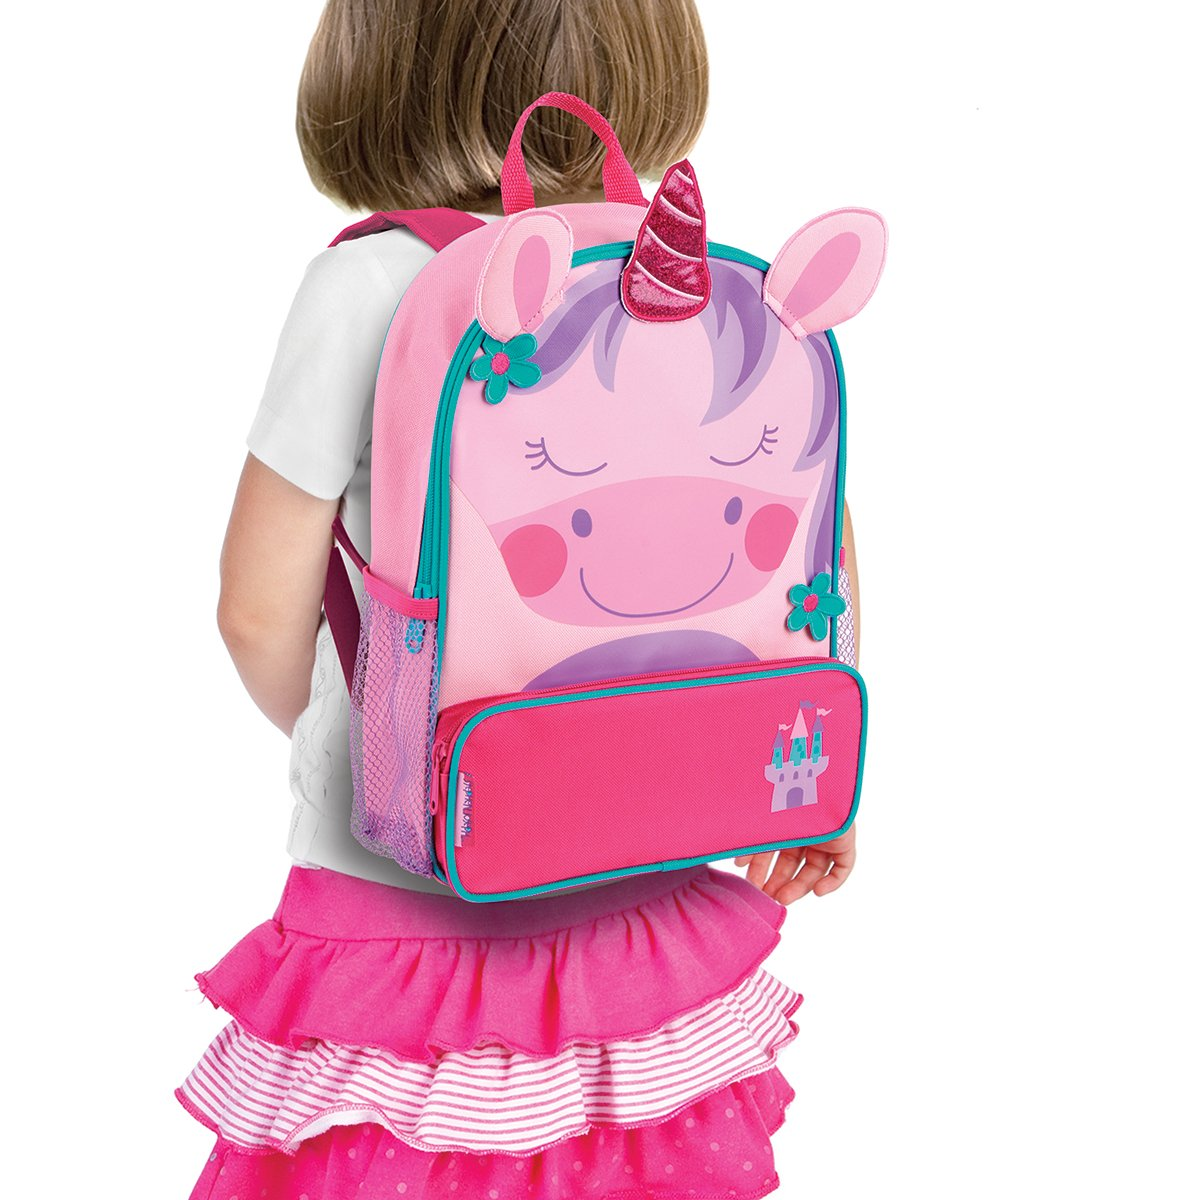 00d774a0a4 Stephen Joseph Little Girls Sidekick Backpack